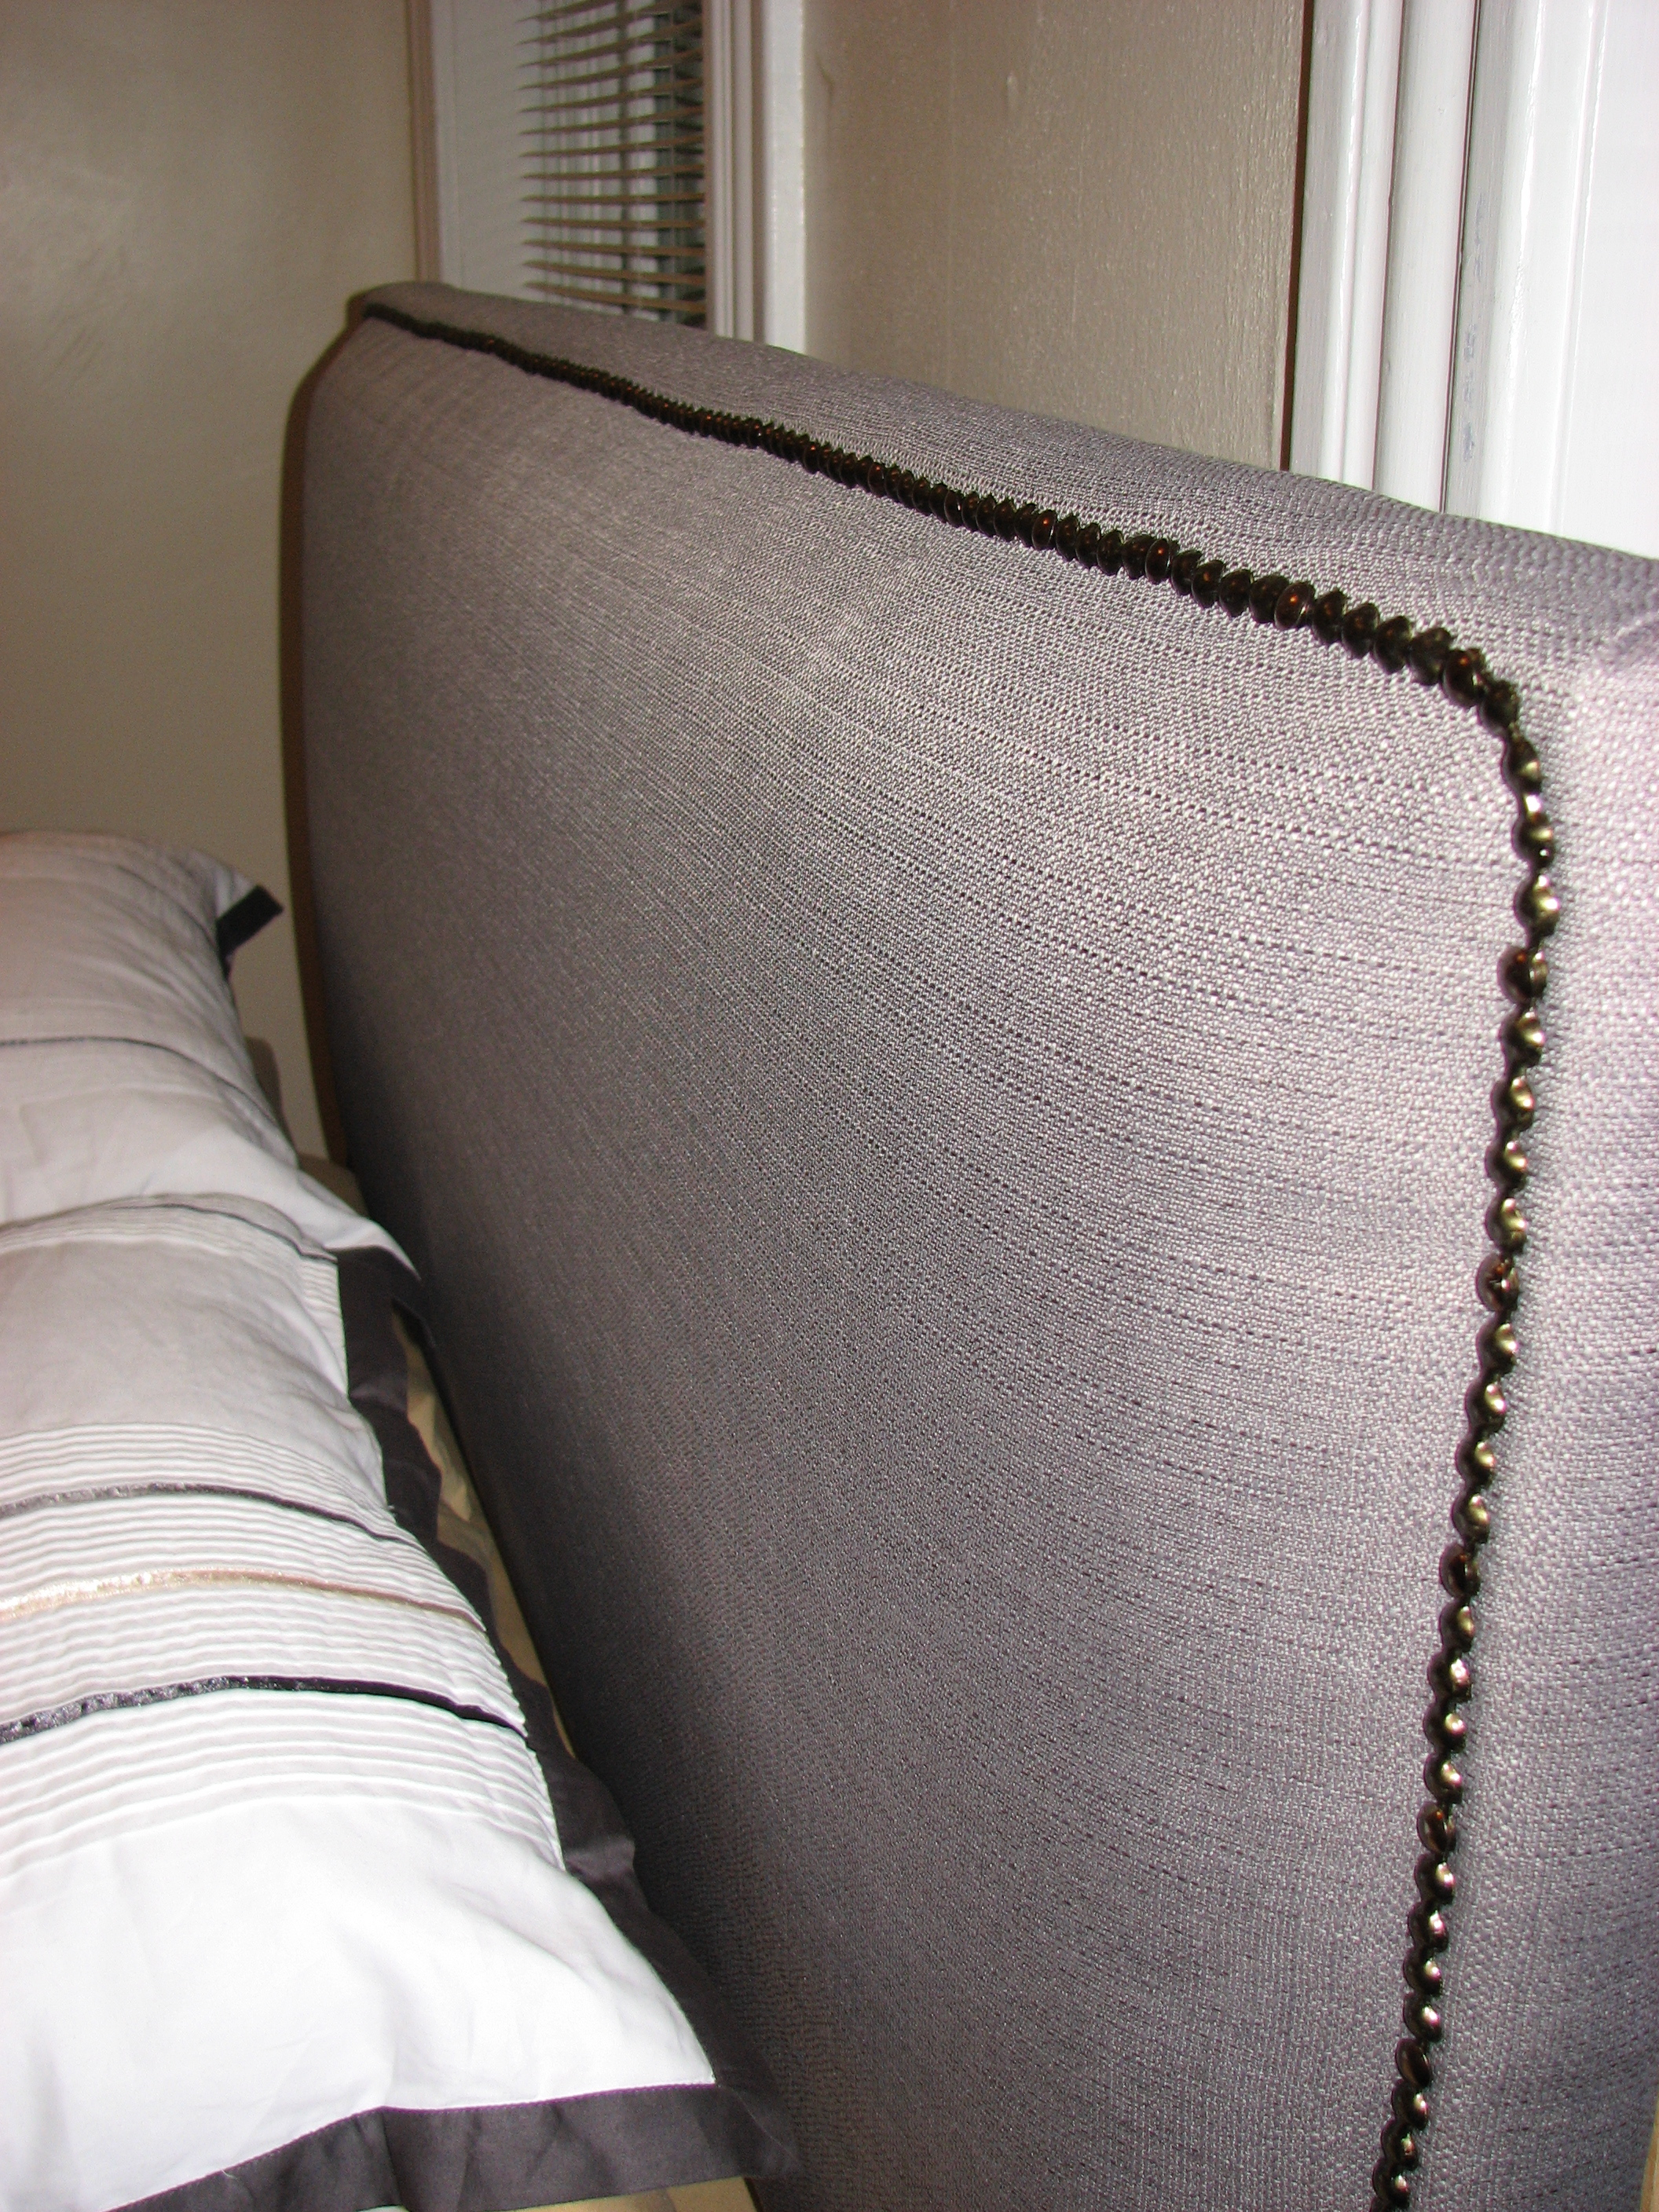 Diy Upholstered Headboard Wall Part 1 By Andrea Beckman